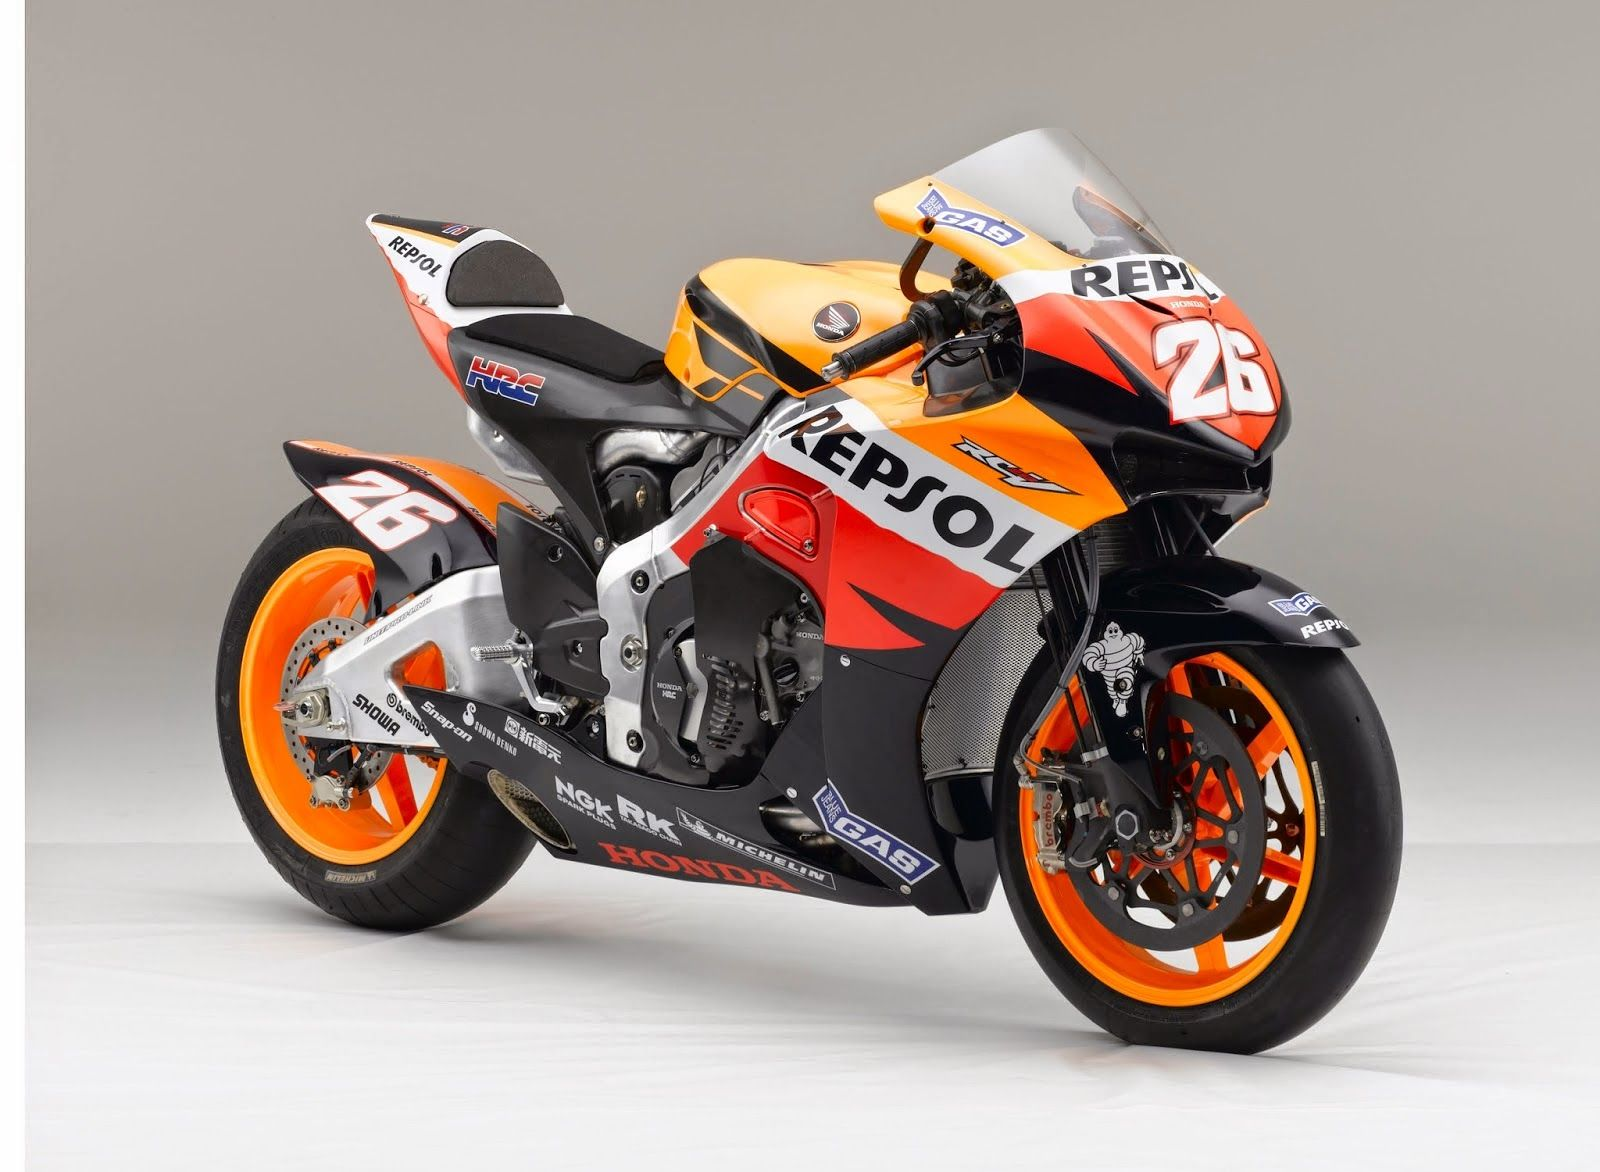 race motor bikes wallpaper download race motor bikes wallpaper 1600